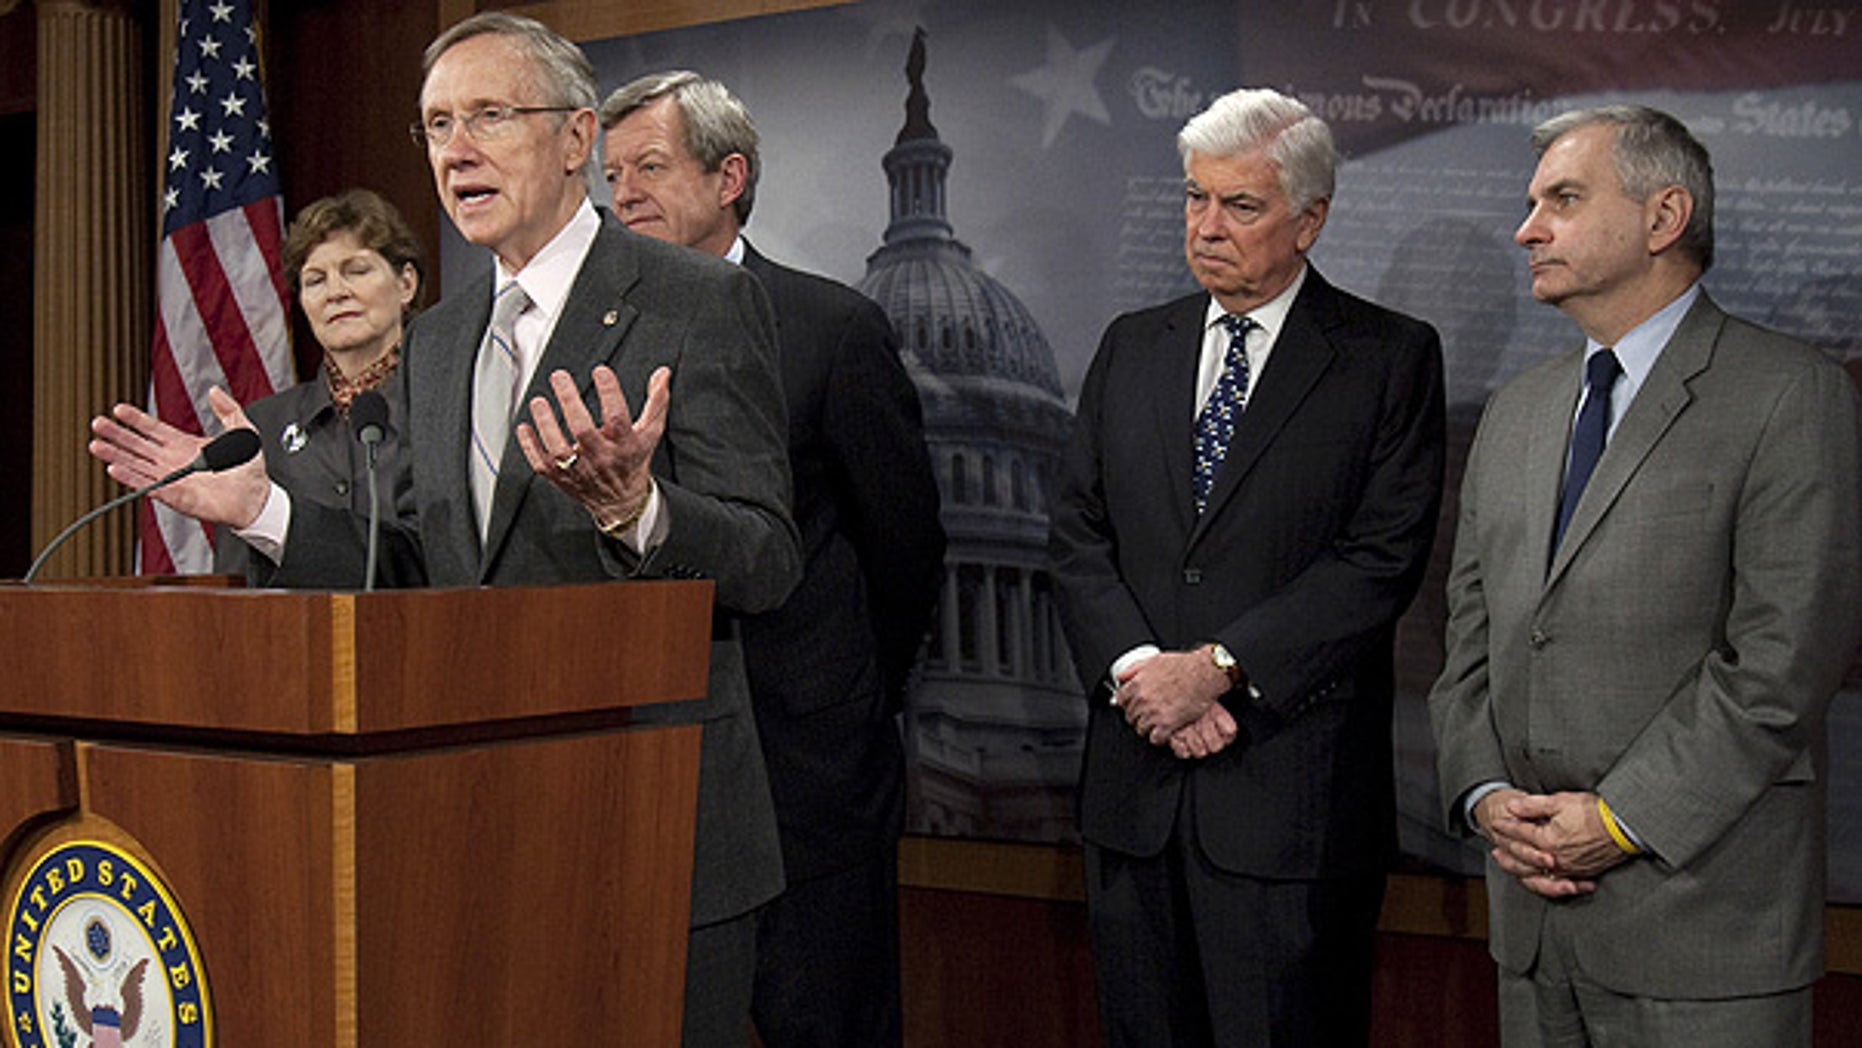 Nov. 4: Senate Majority Leader Harry Reid speaks as Sens. Jeanne Shaheen, Max Baucus, Chris Dodd, and Jack Reed listen on Capitol Hill. (AP)